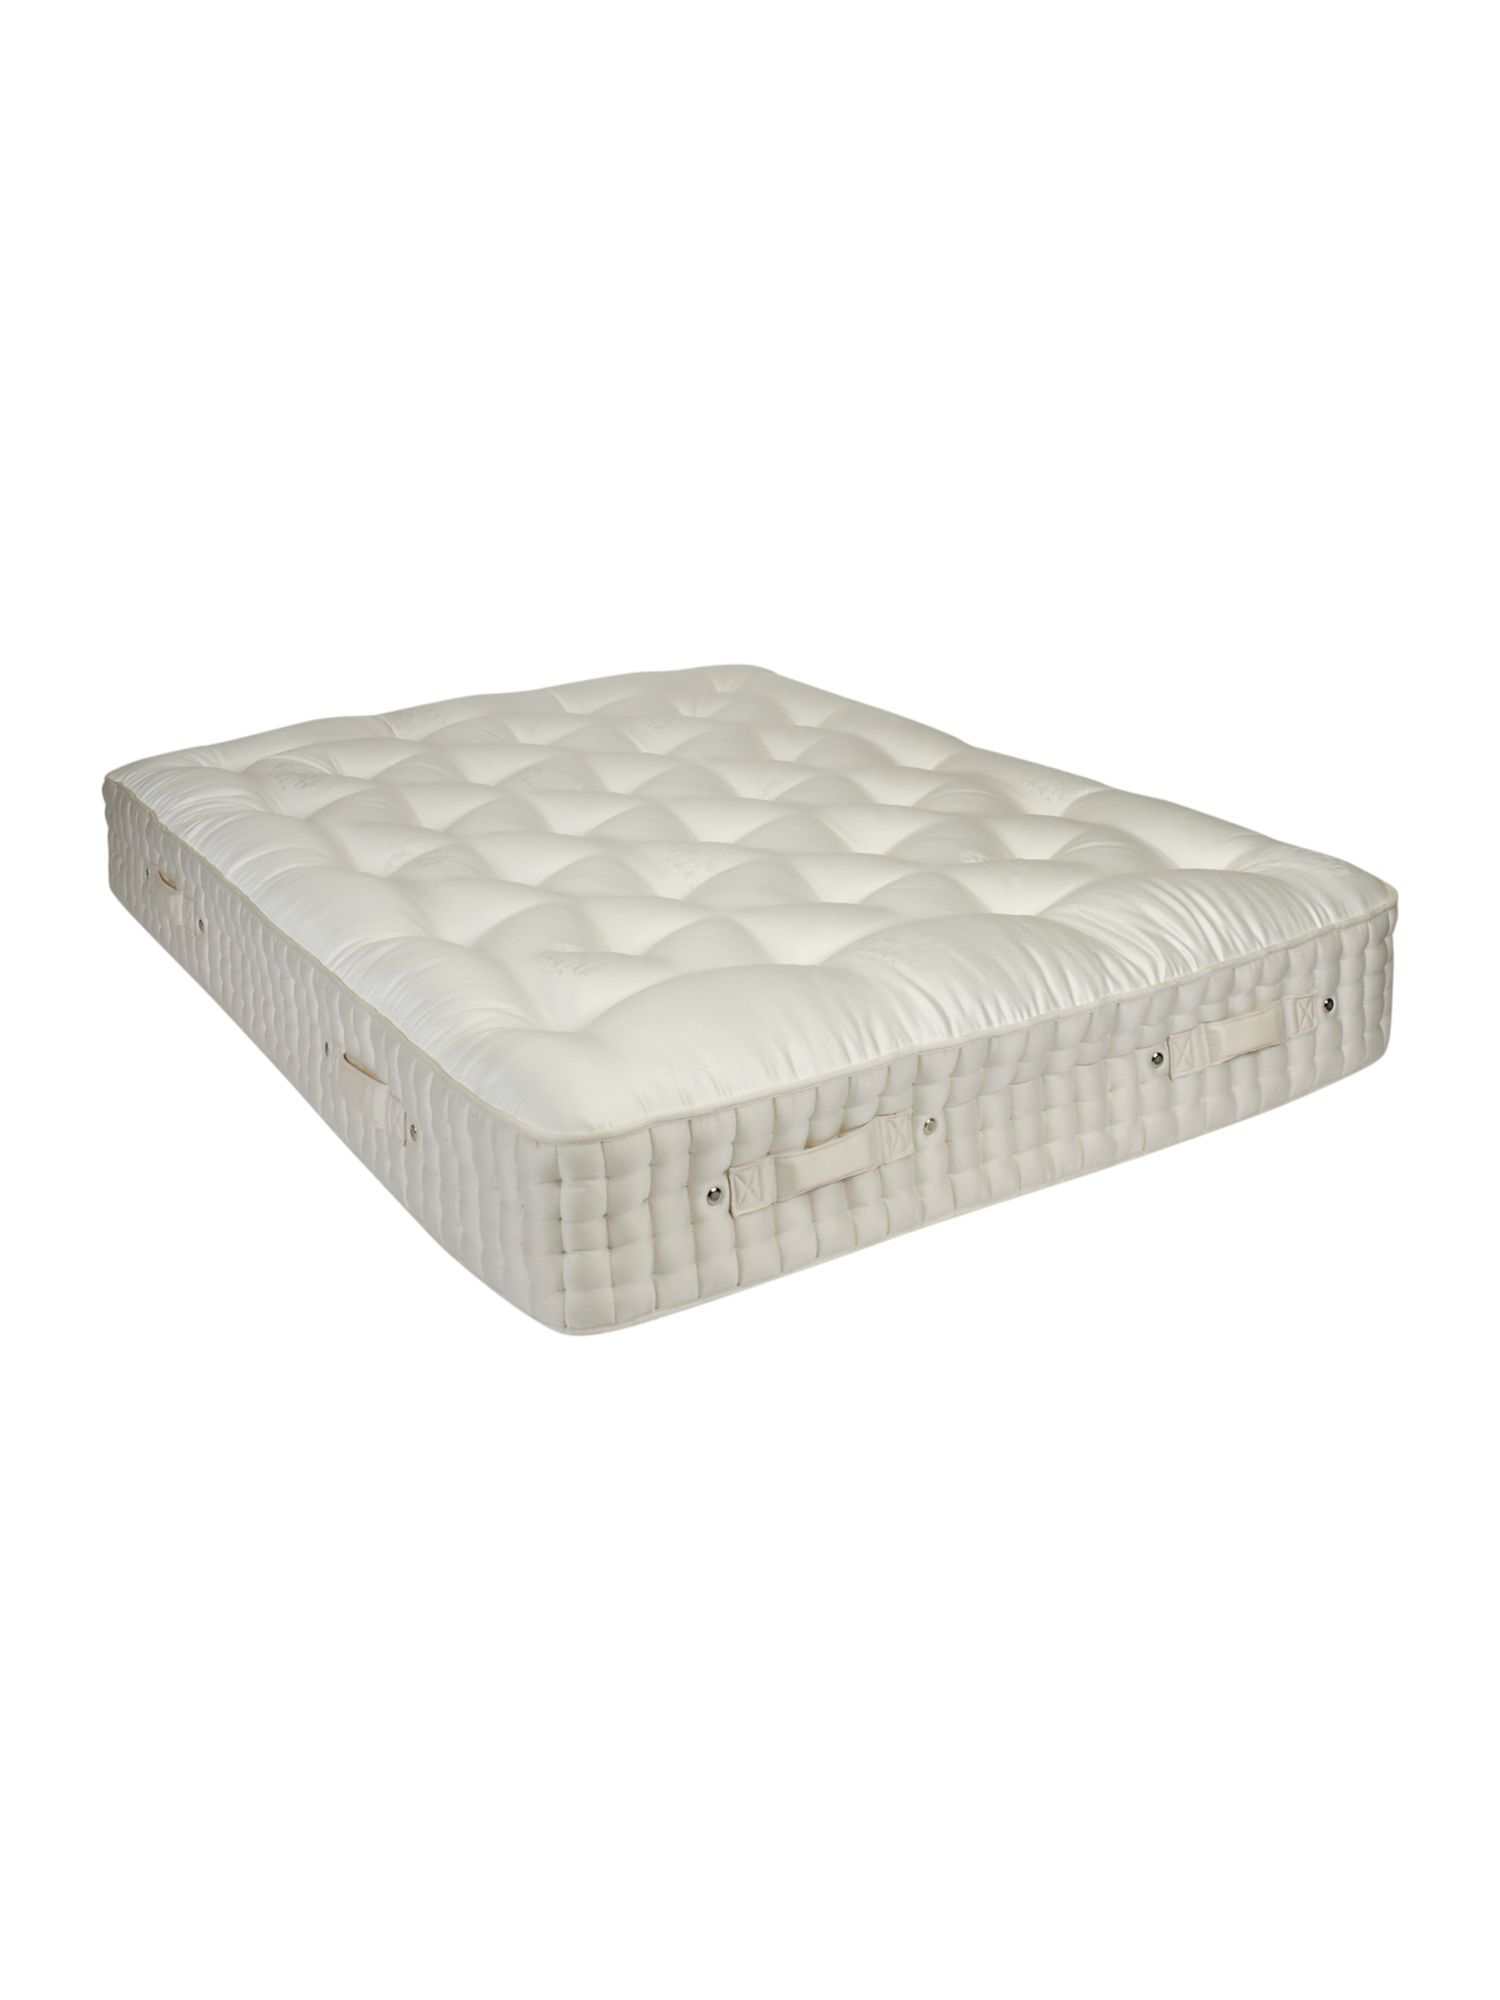 Leyburn mattress range